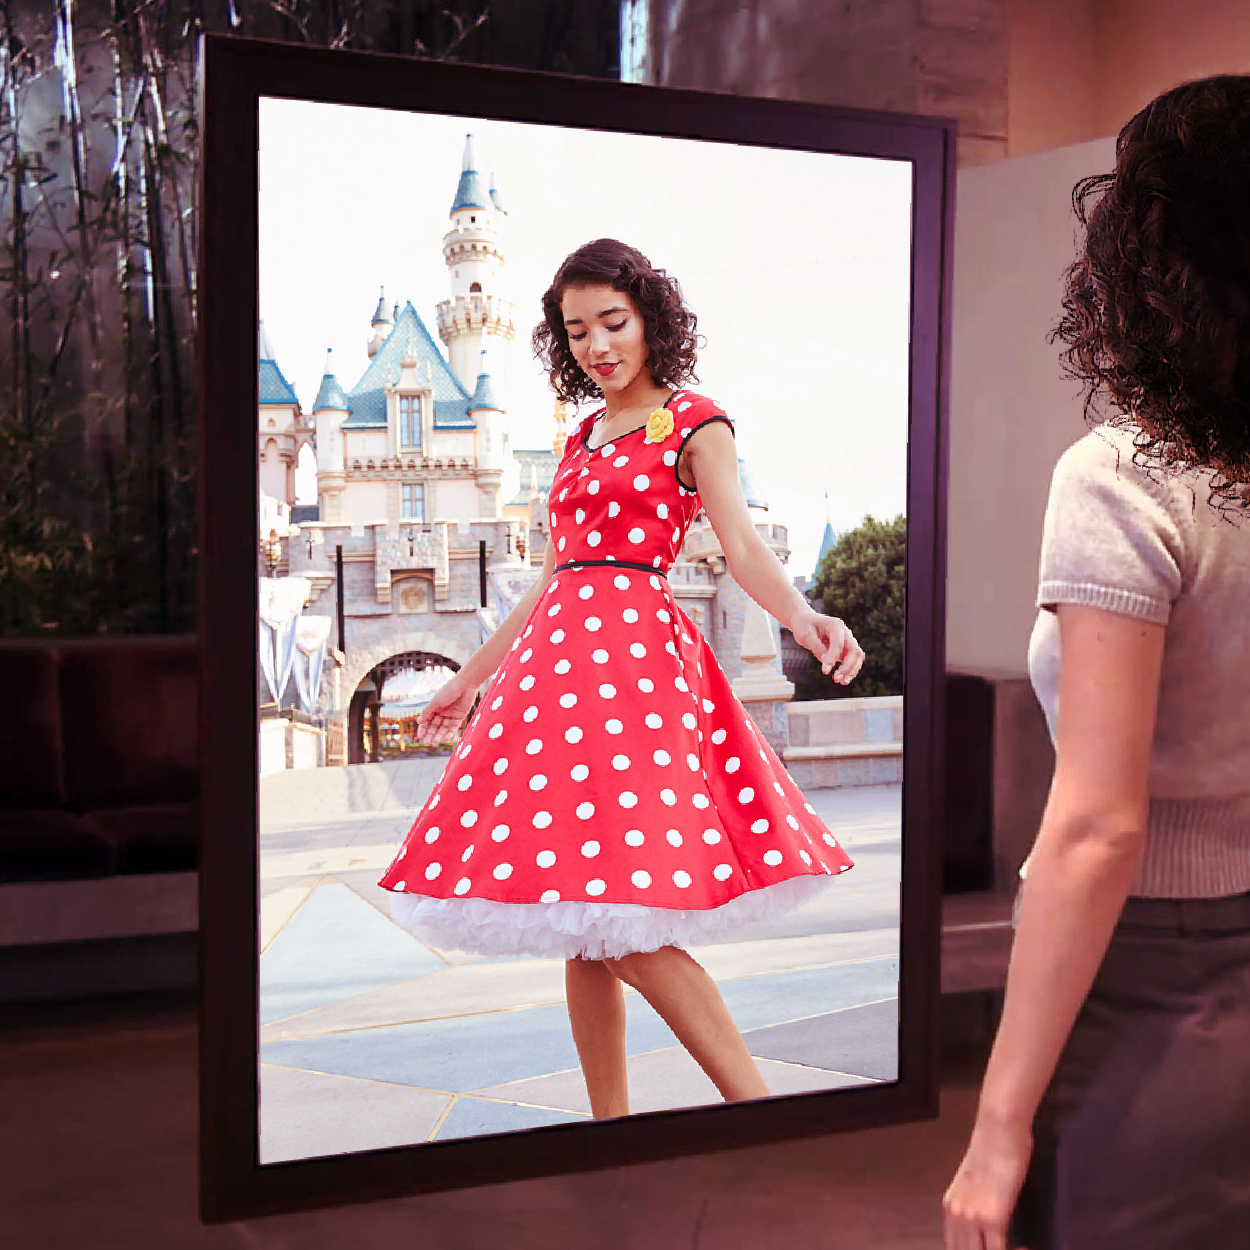 Virtual fitting rooms - Shoppers can try on clothes and outfits in a virtual environment with live Disney-themed background videos.